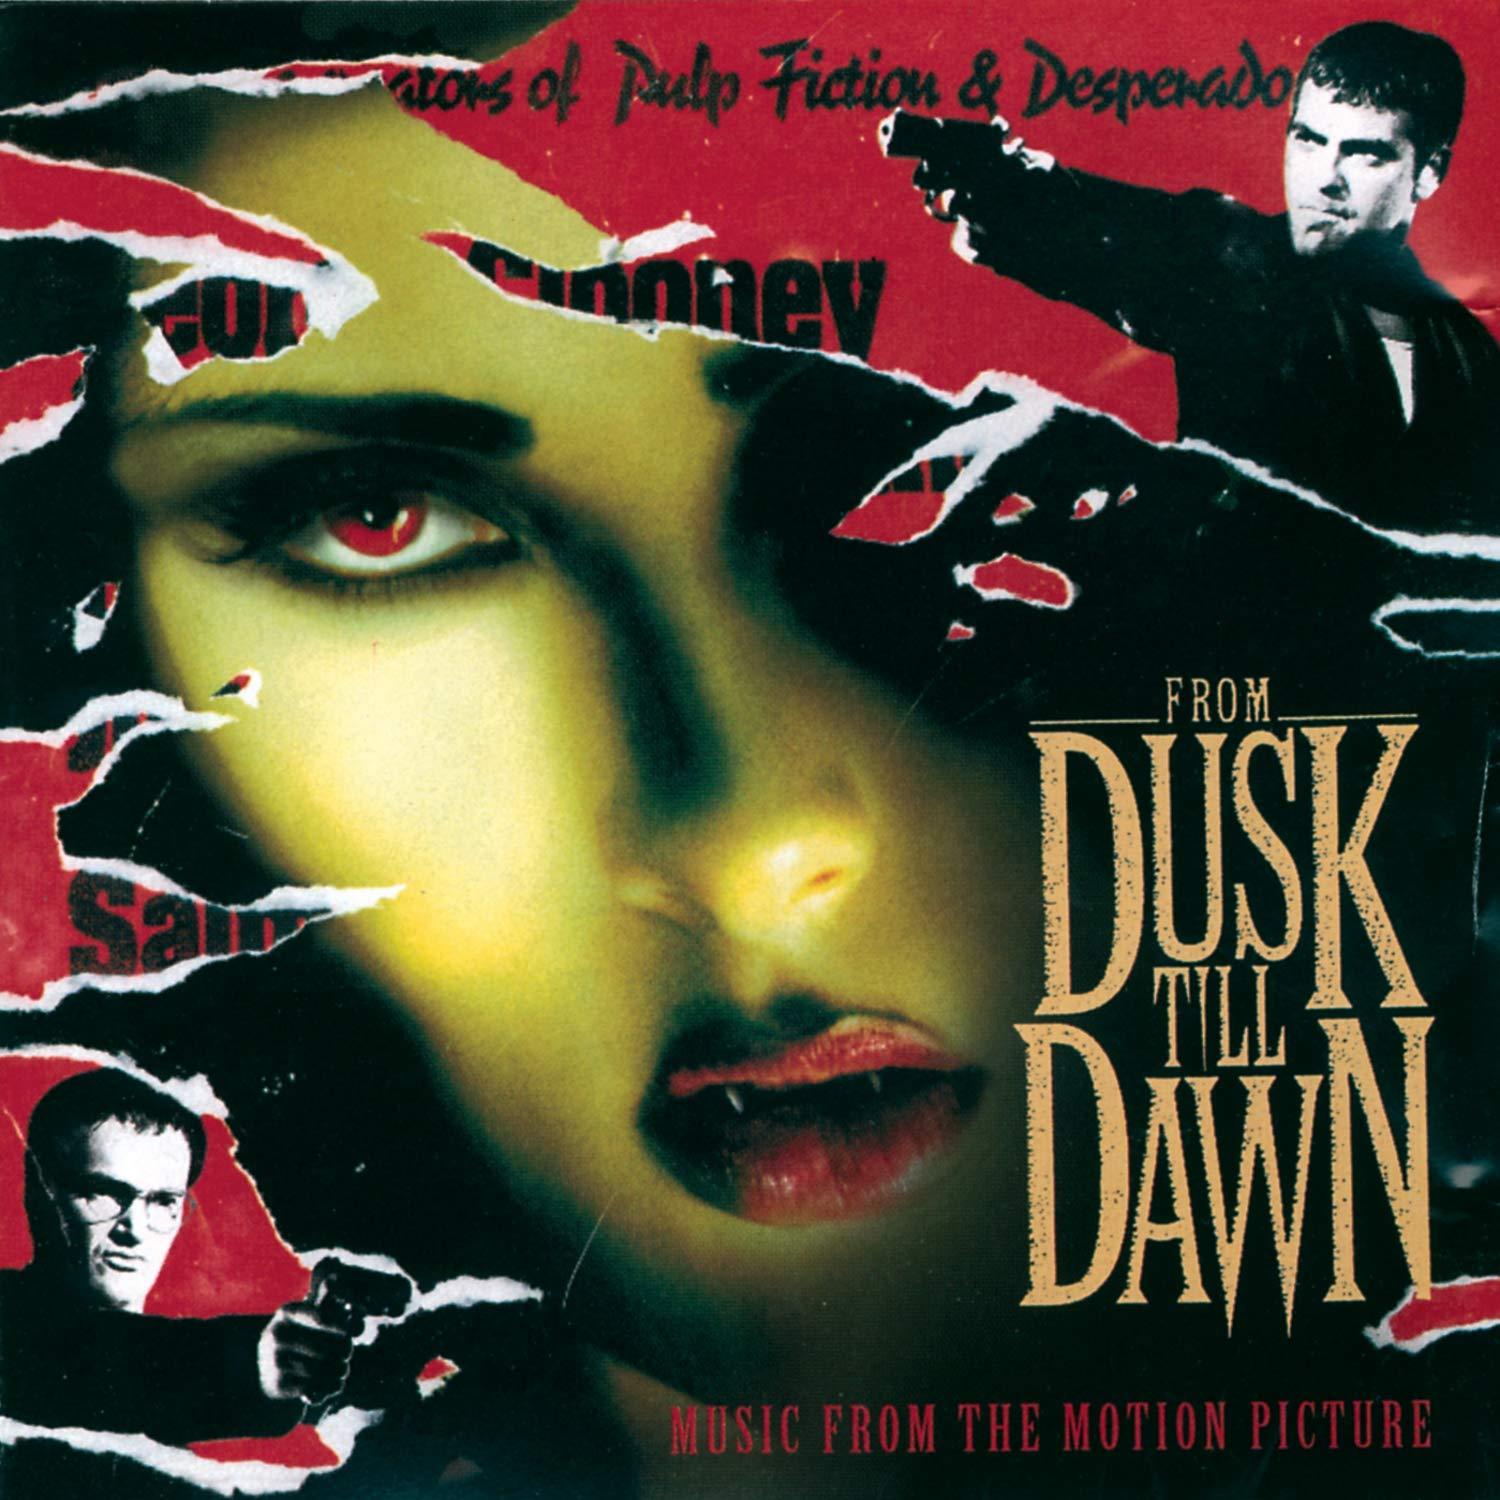 From Dusk Till Dawn: Music The Topics on TV Max 45% OFF Picture Motion